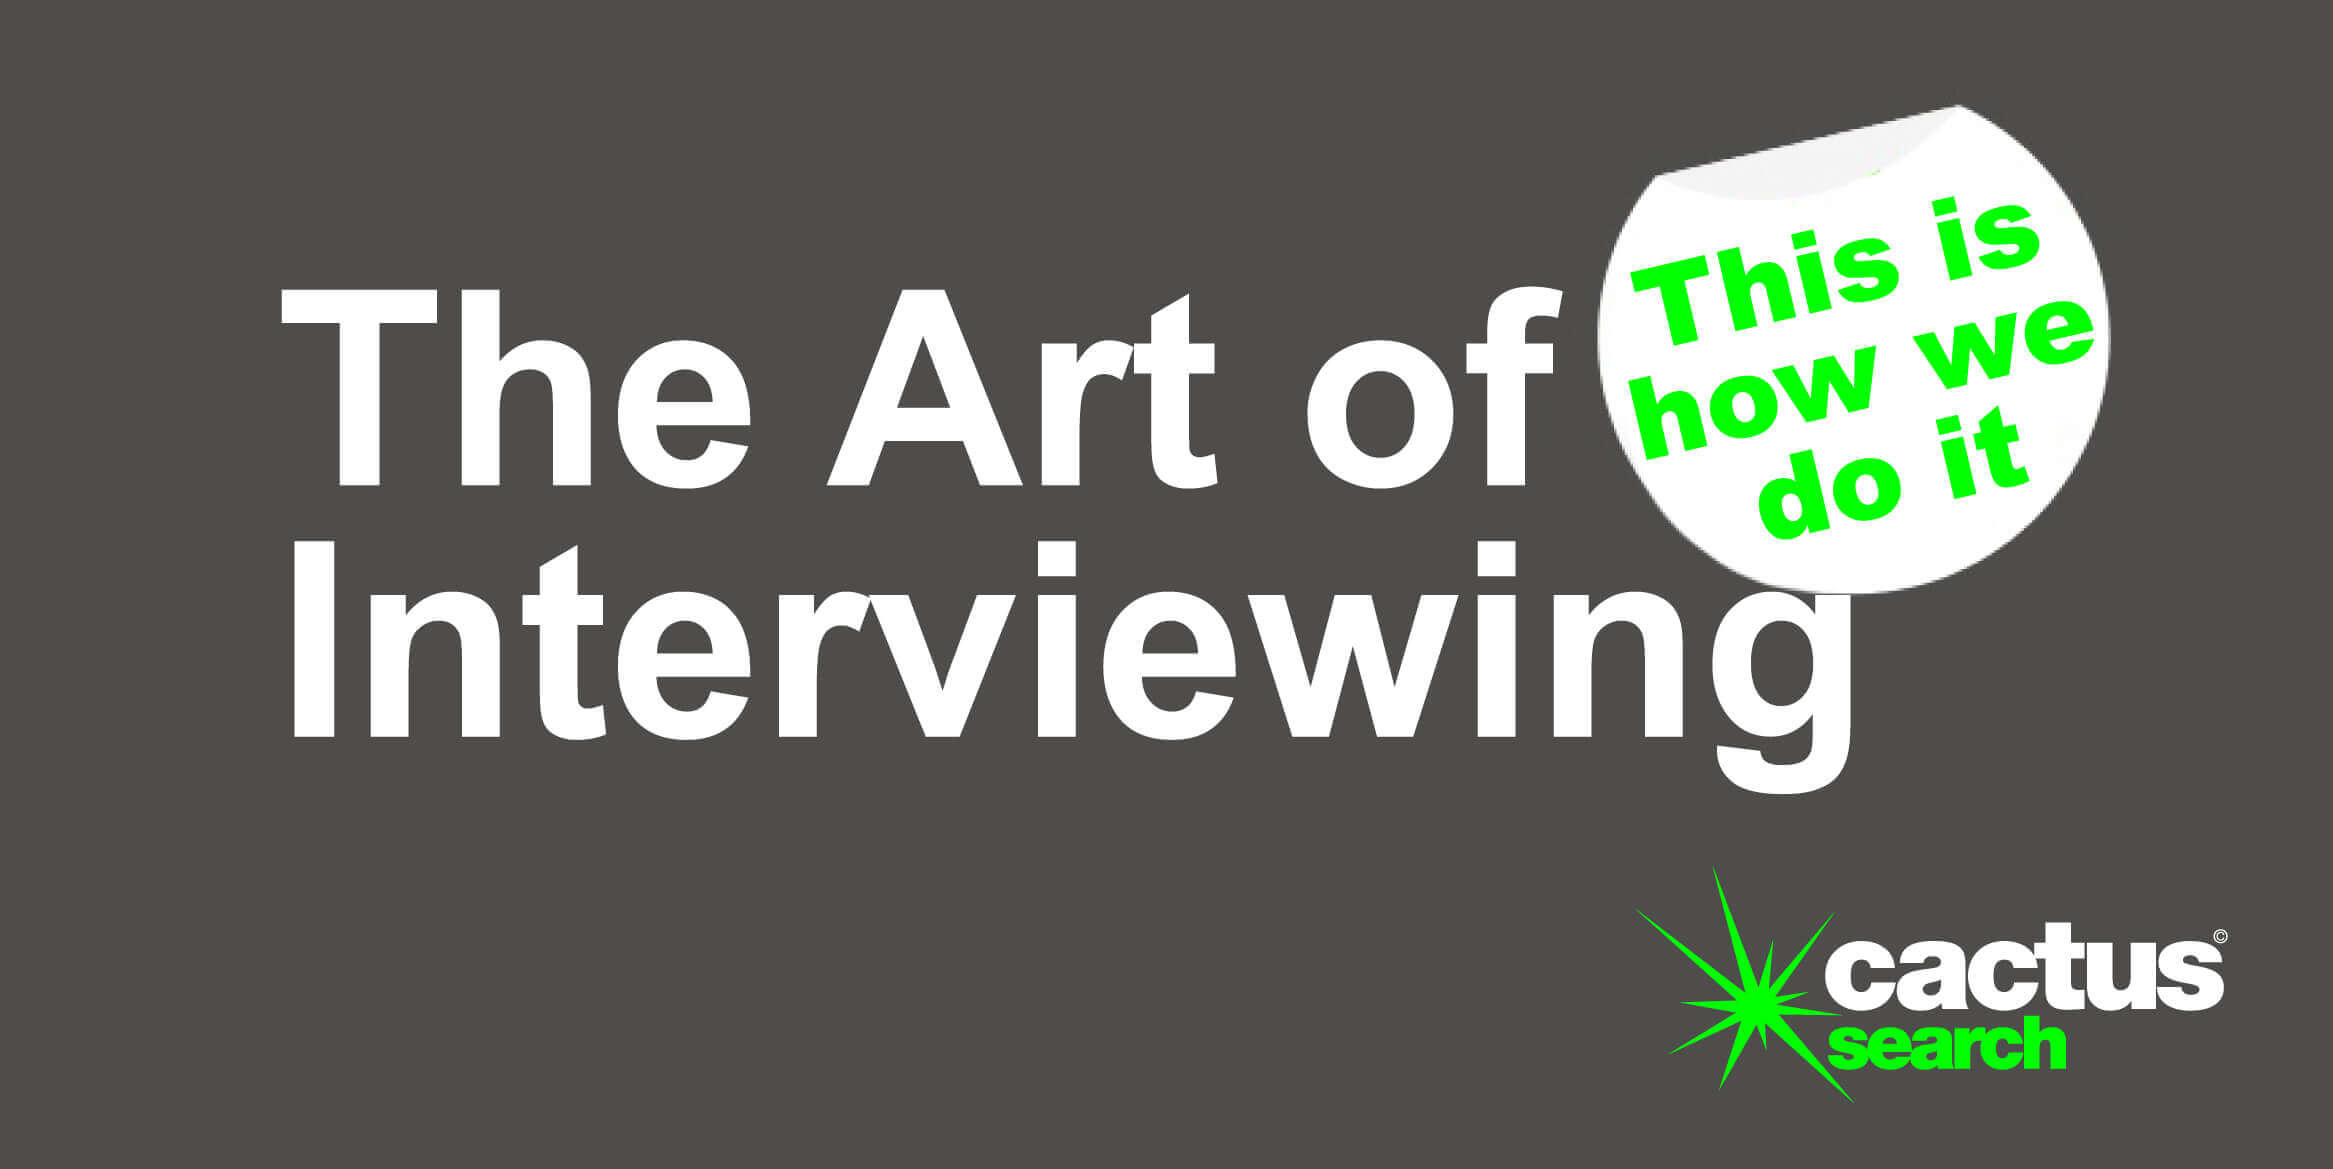 art-of-interviewing-copy.jpg